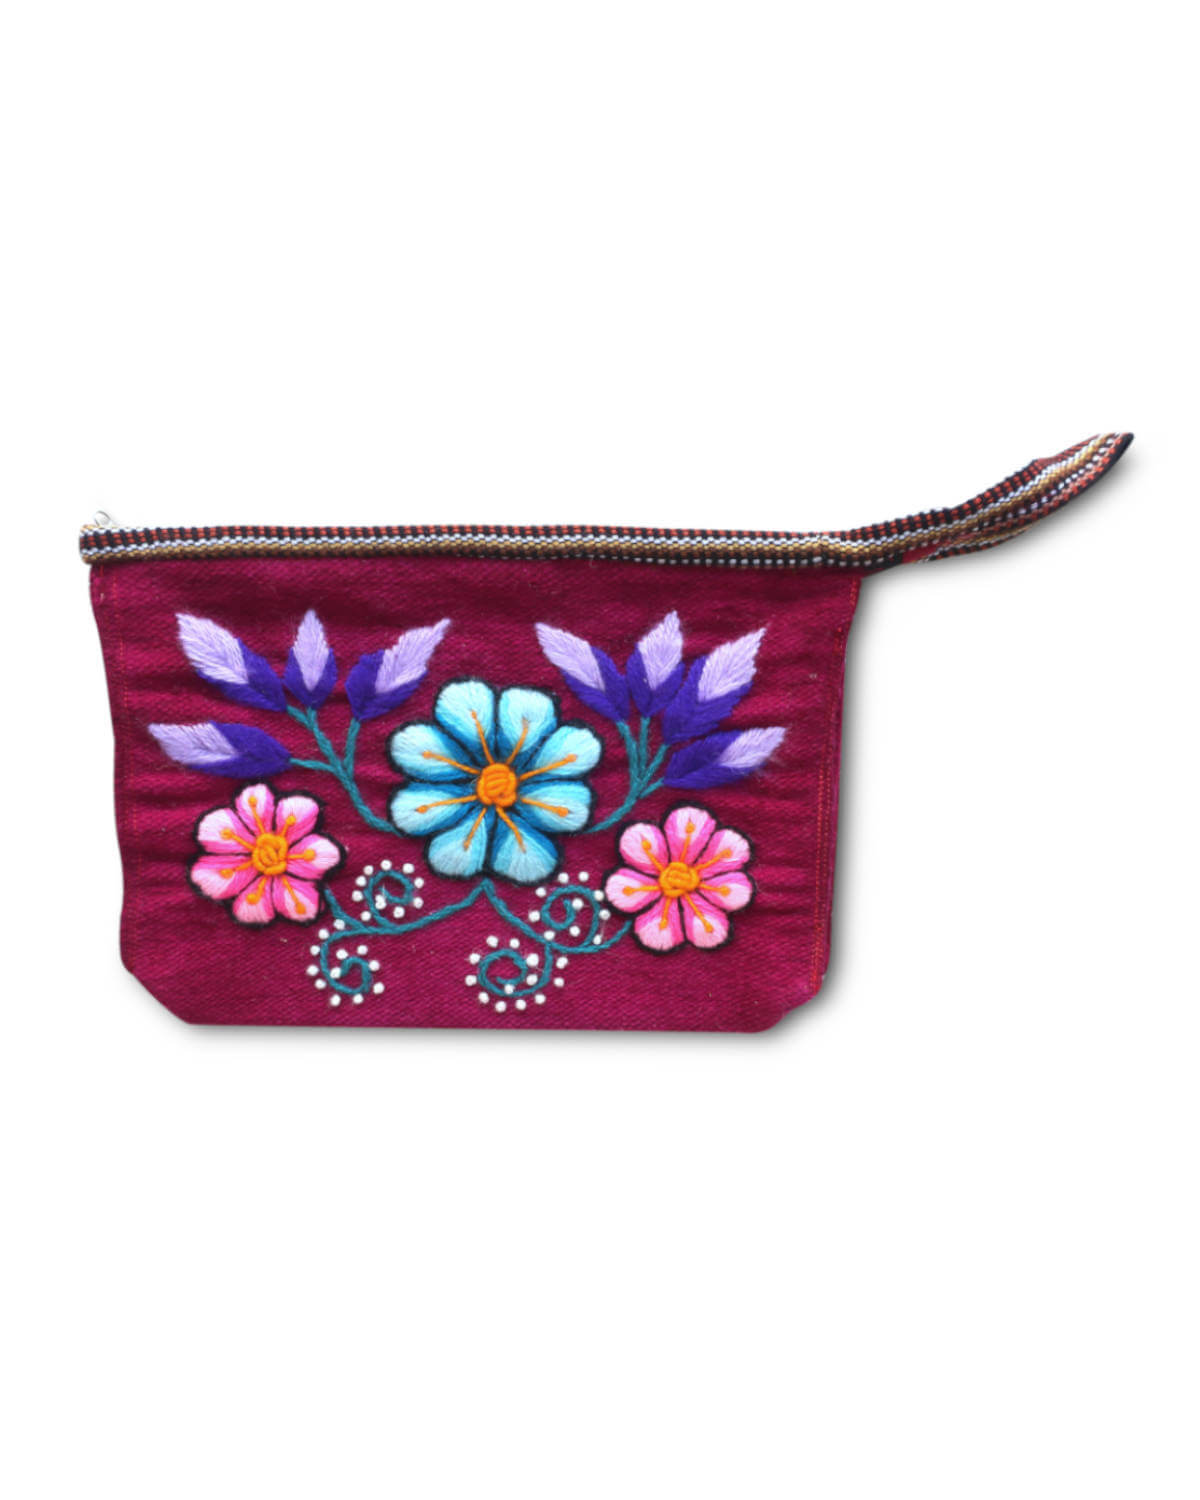 Tasche Ideasias Bordeaux 1